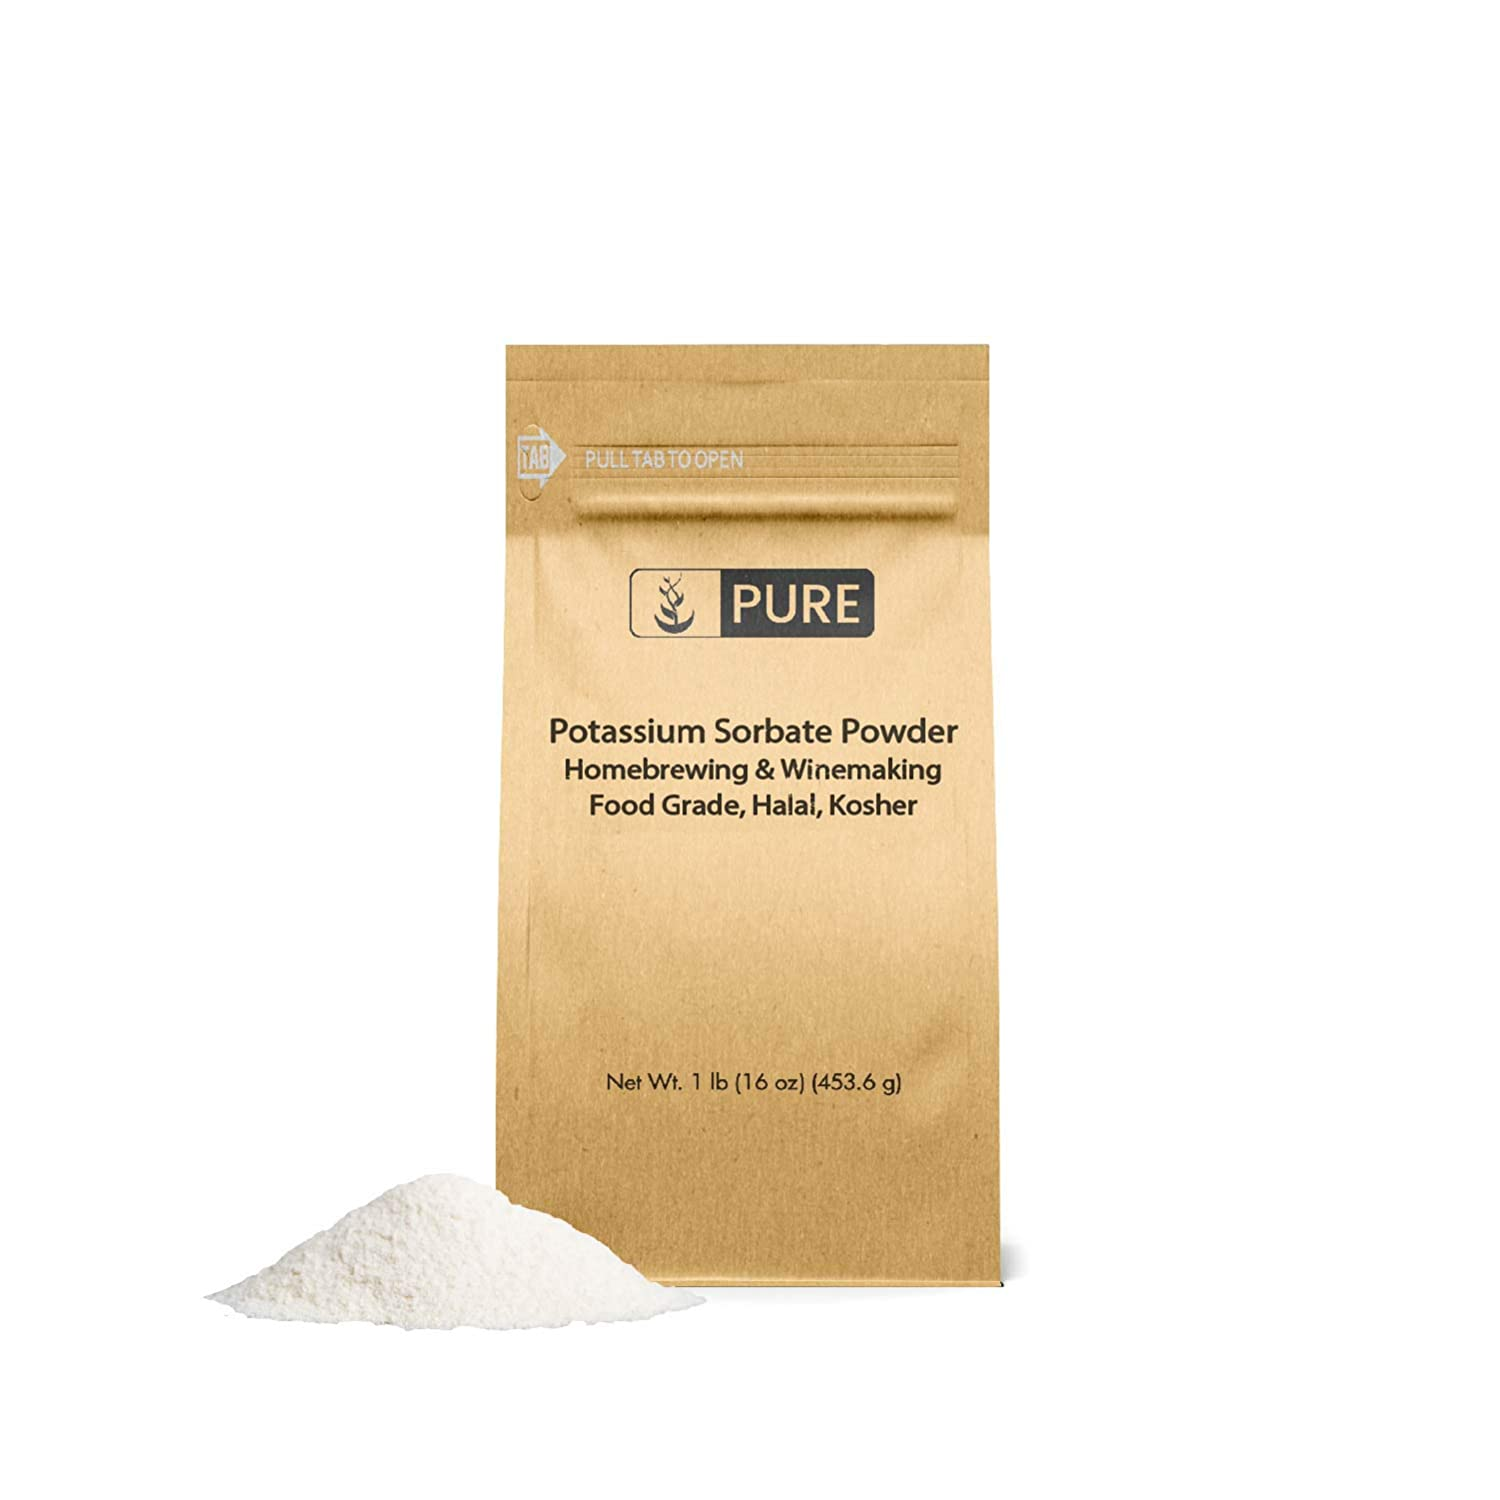 Potassium Sorbate (1 lb) by Pure Ingredients, Food and USP Pharmaceutical Grade For Use in Cooking, Brewing, & Cosmetics